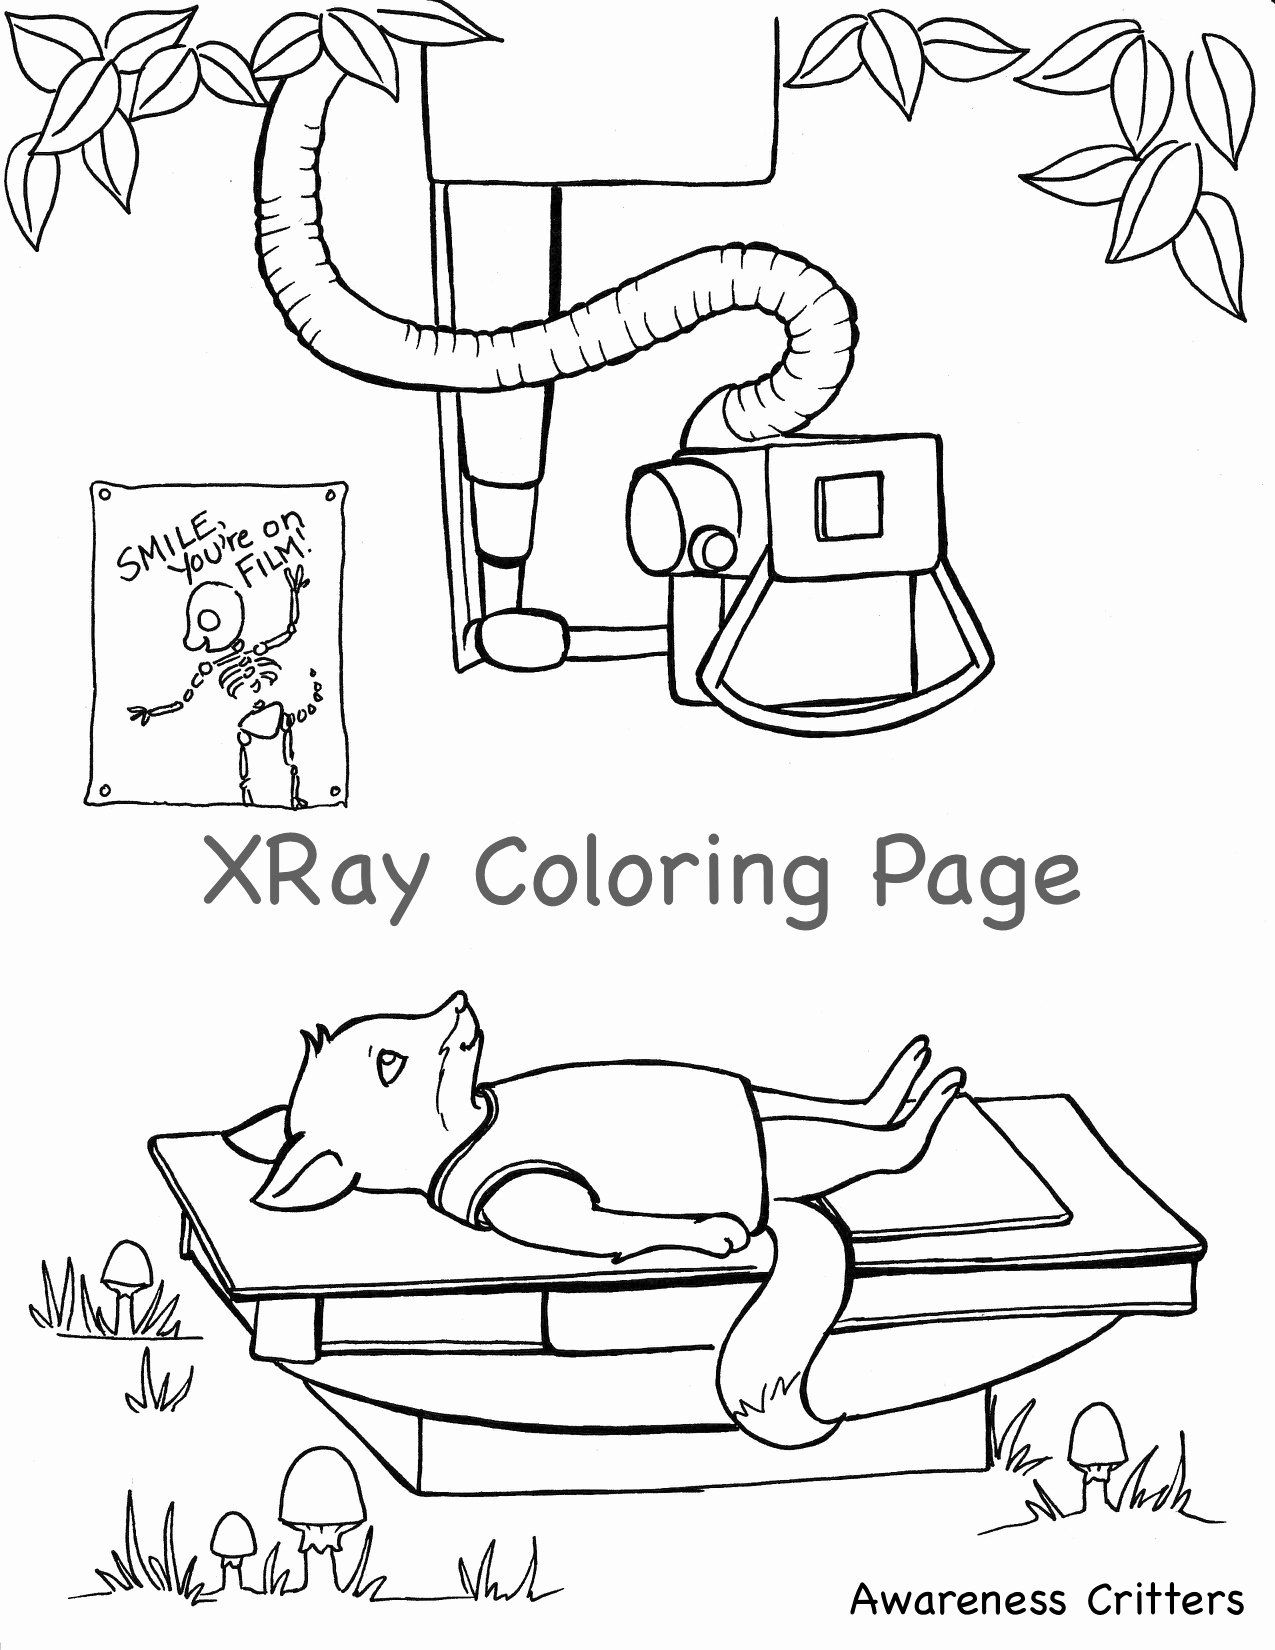 X Ray Coloring Page Lovely X Ray Coloring Pages For Kids Az Sketch Coloring Page Coloring Pages Kids Az Coloring Pages For Kids